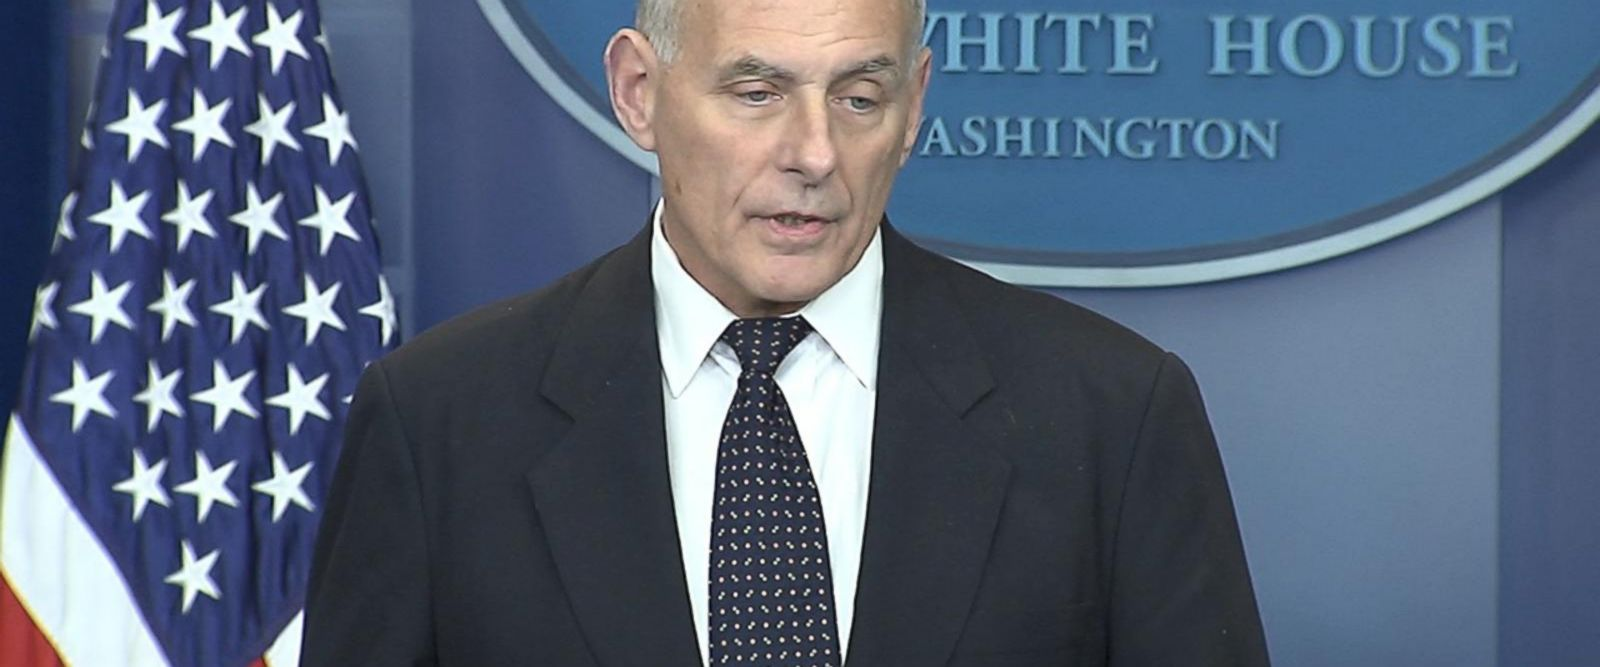 VIDEO: John Kelly speaks at White House press briefing